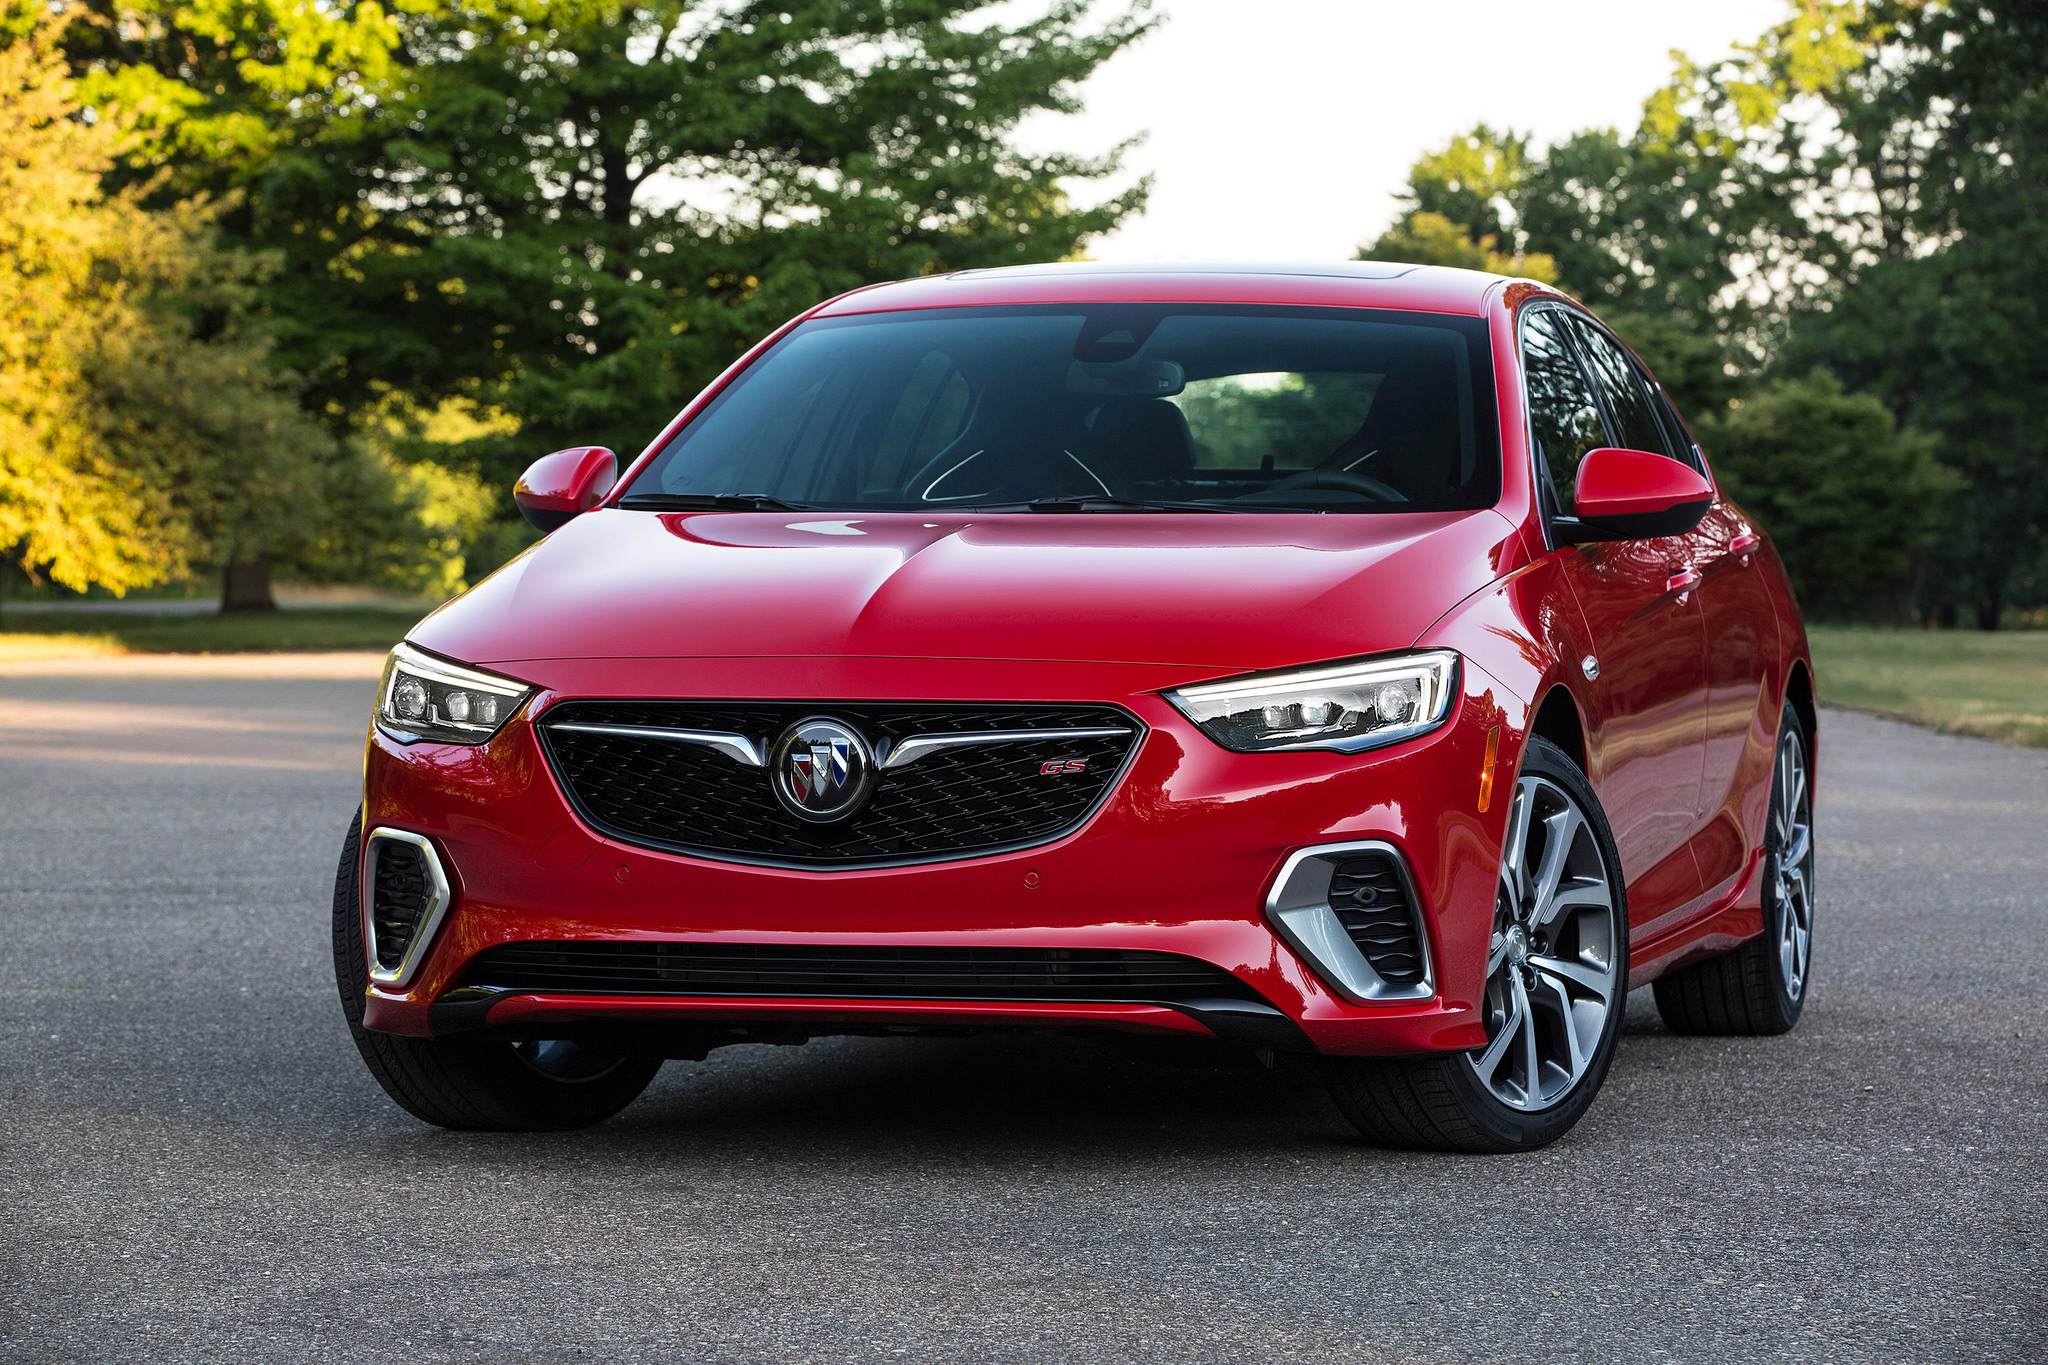 2018 Buick Regal GS at Bradshaw Automotive